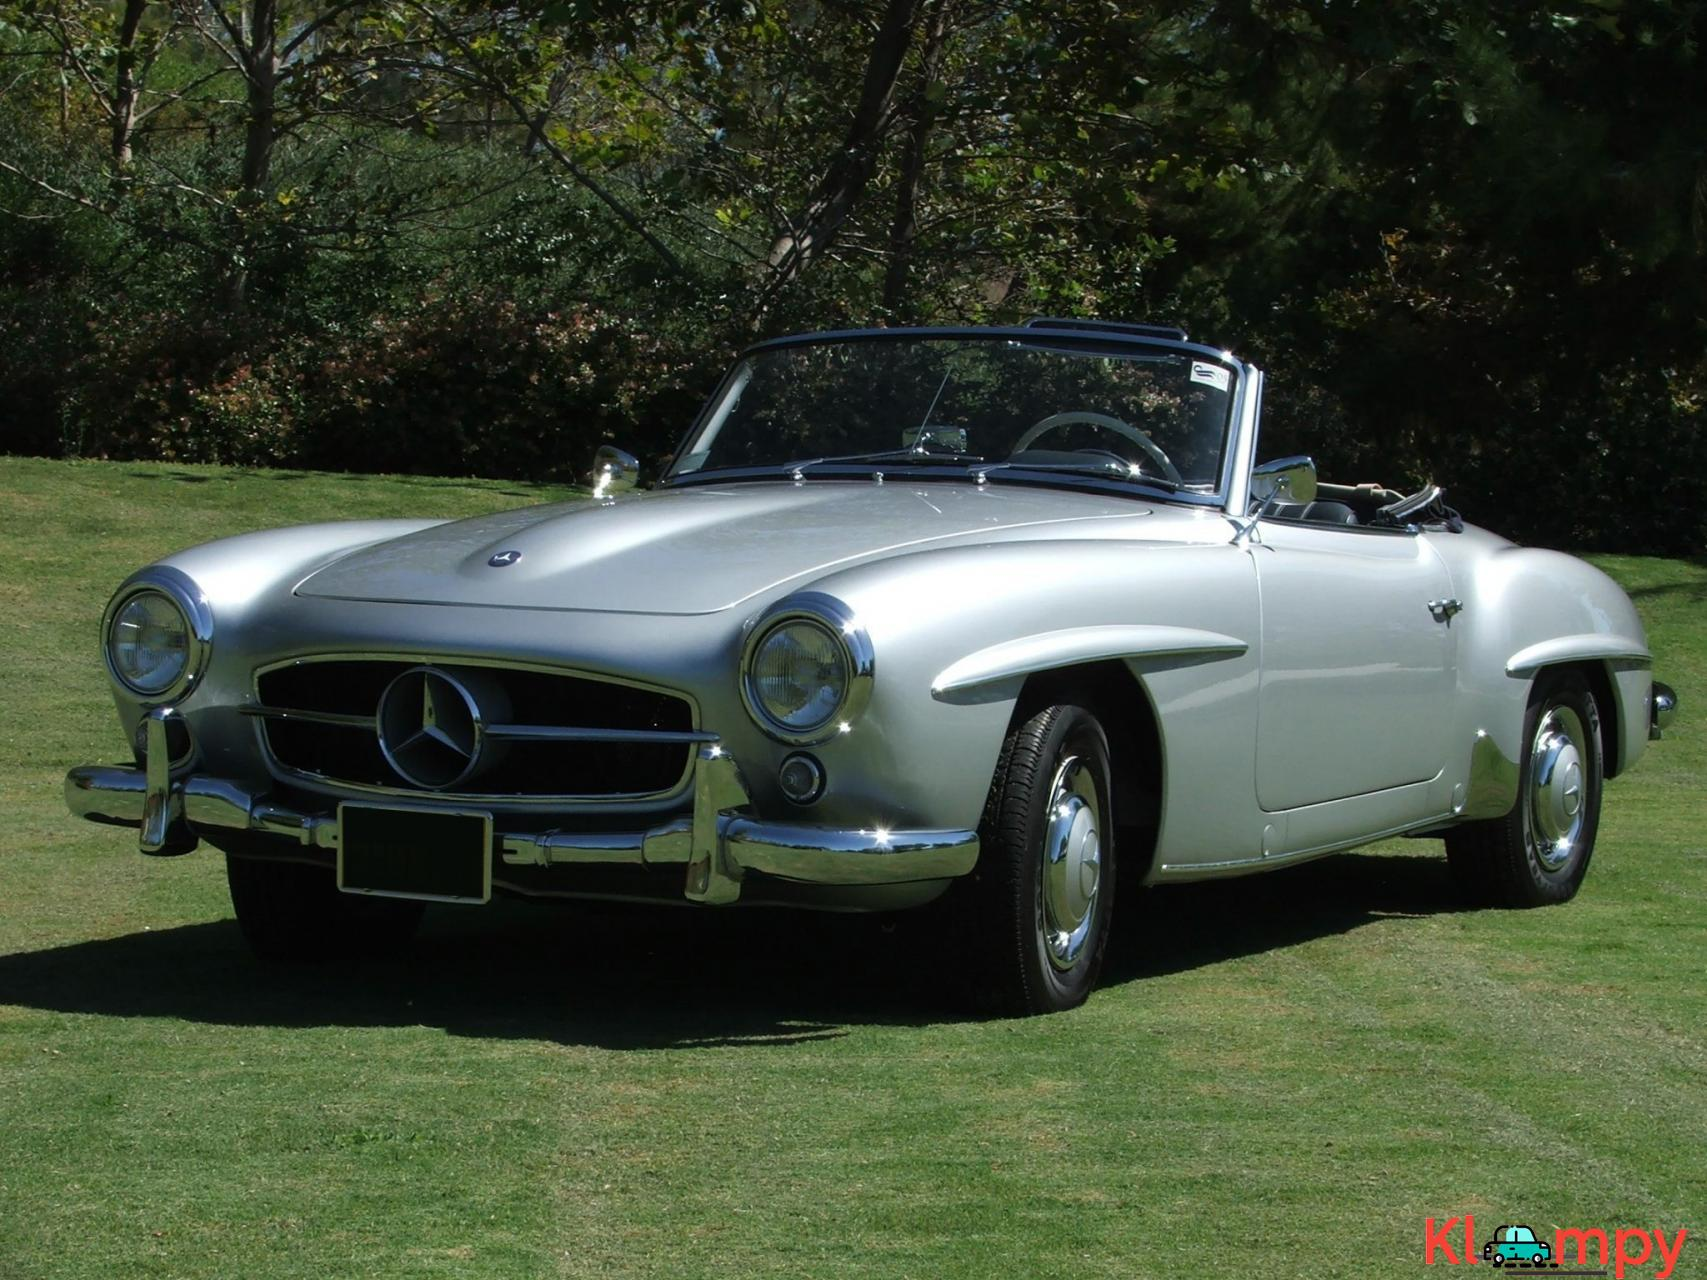 1957 Mercedes-Benz 190SL Brilliant Silver - 1/20